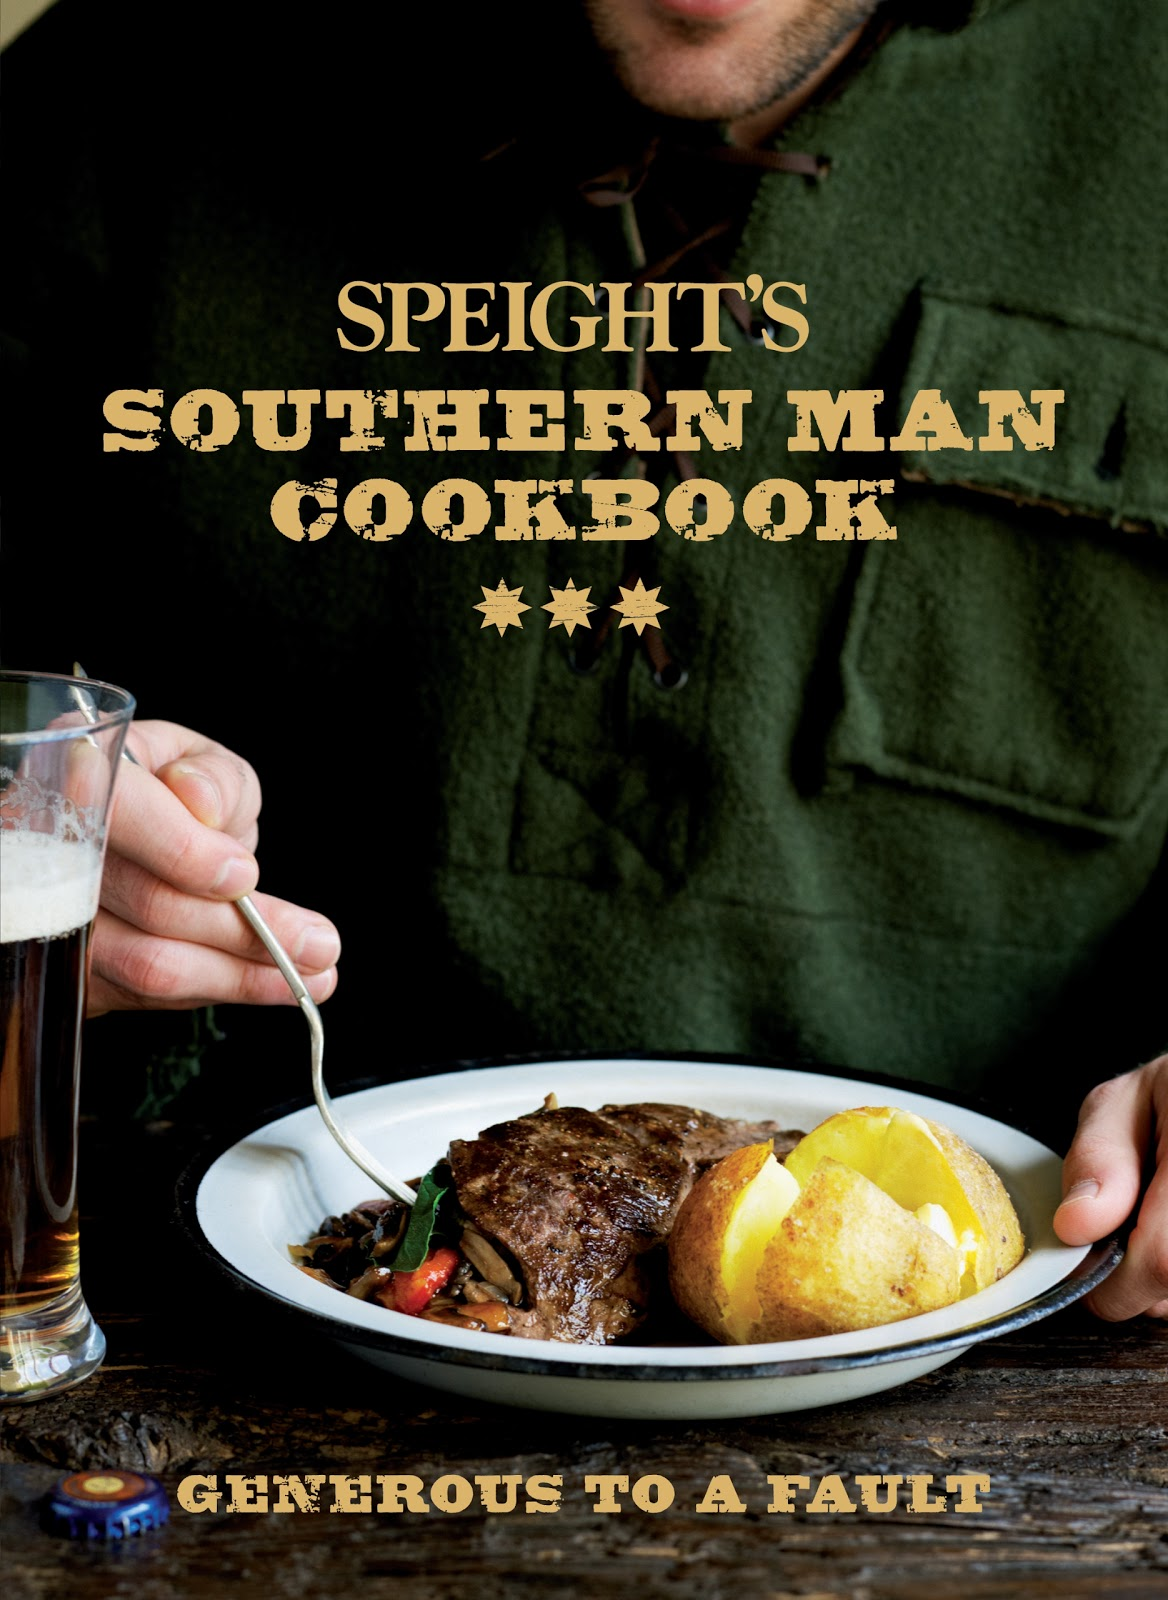 Beatties book blog unofficial homepage of the new zealand book speights southern man cookbook forumfinder Image collections